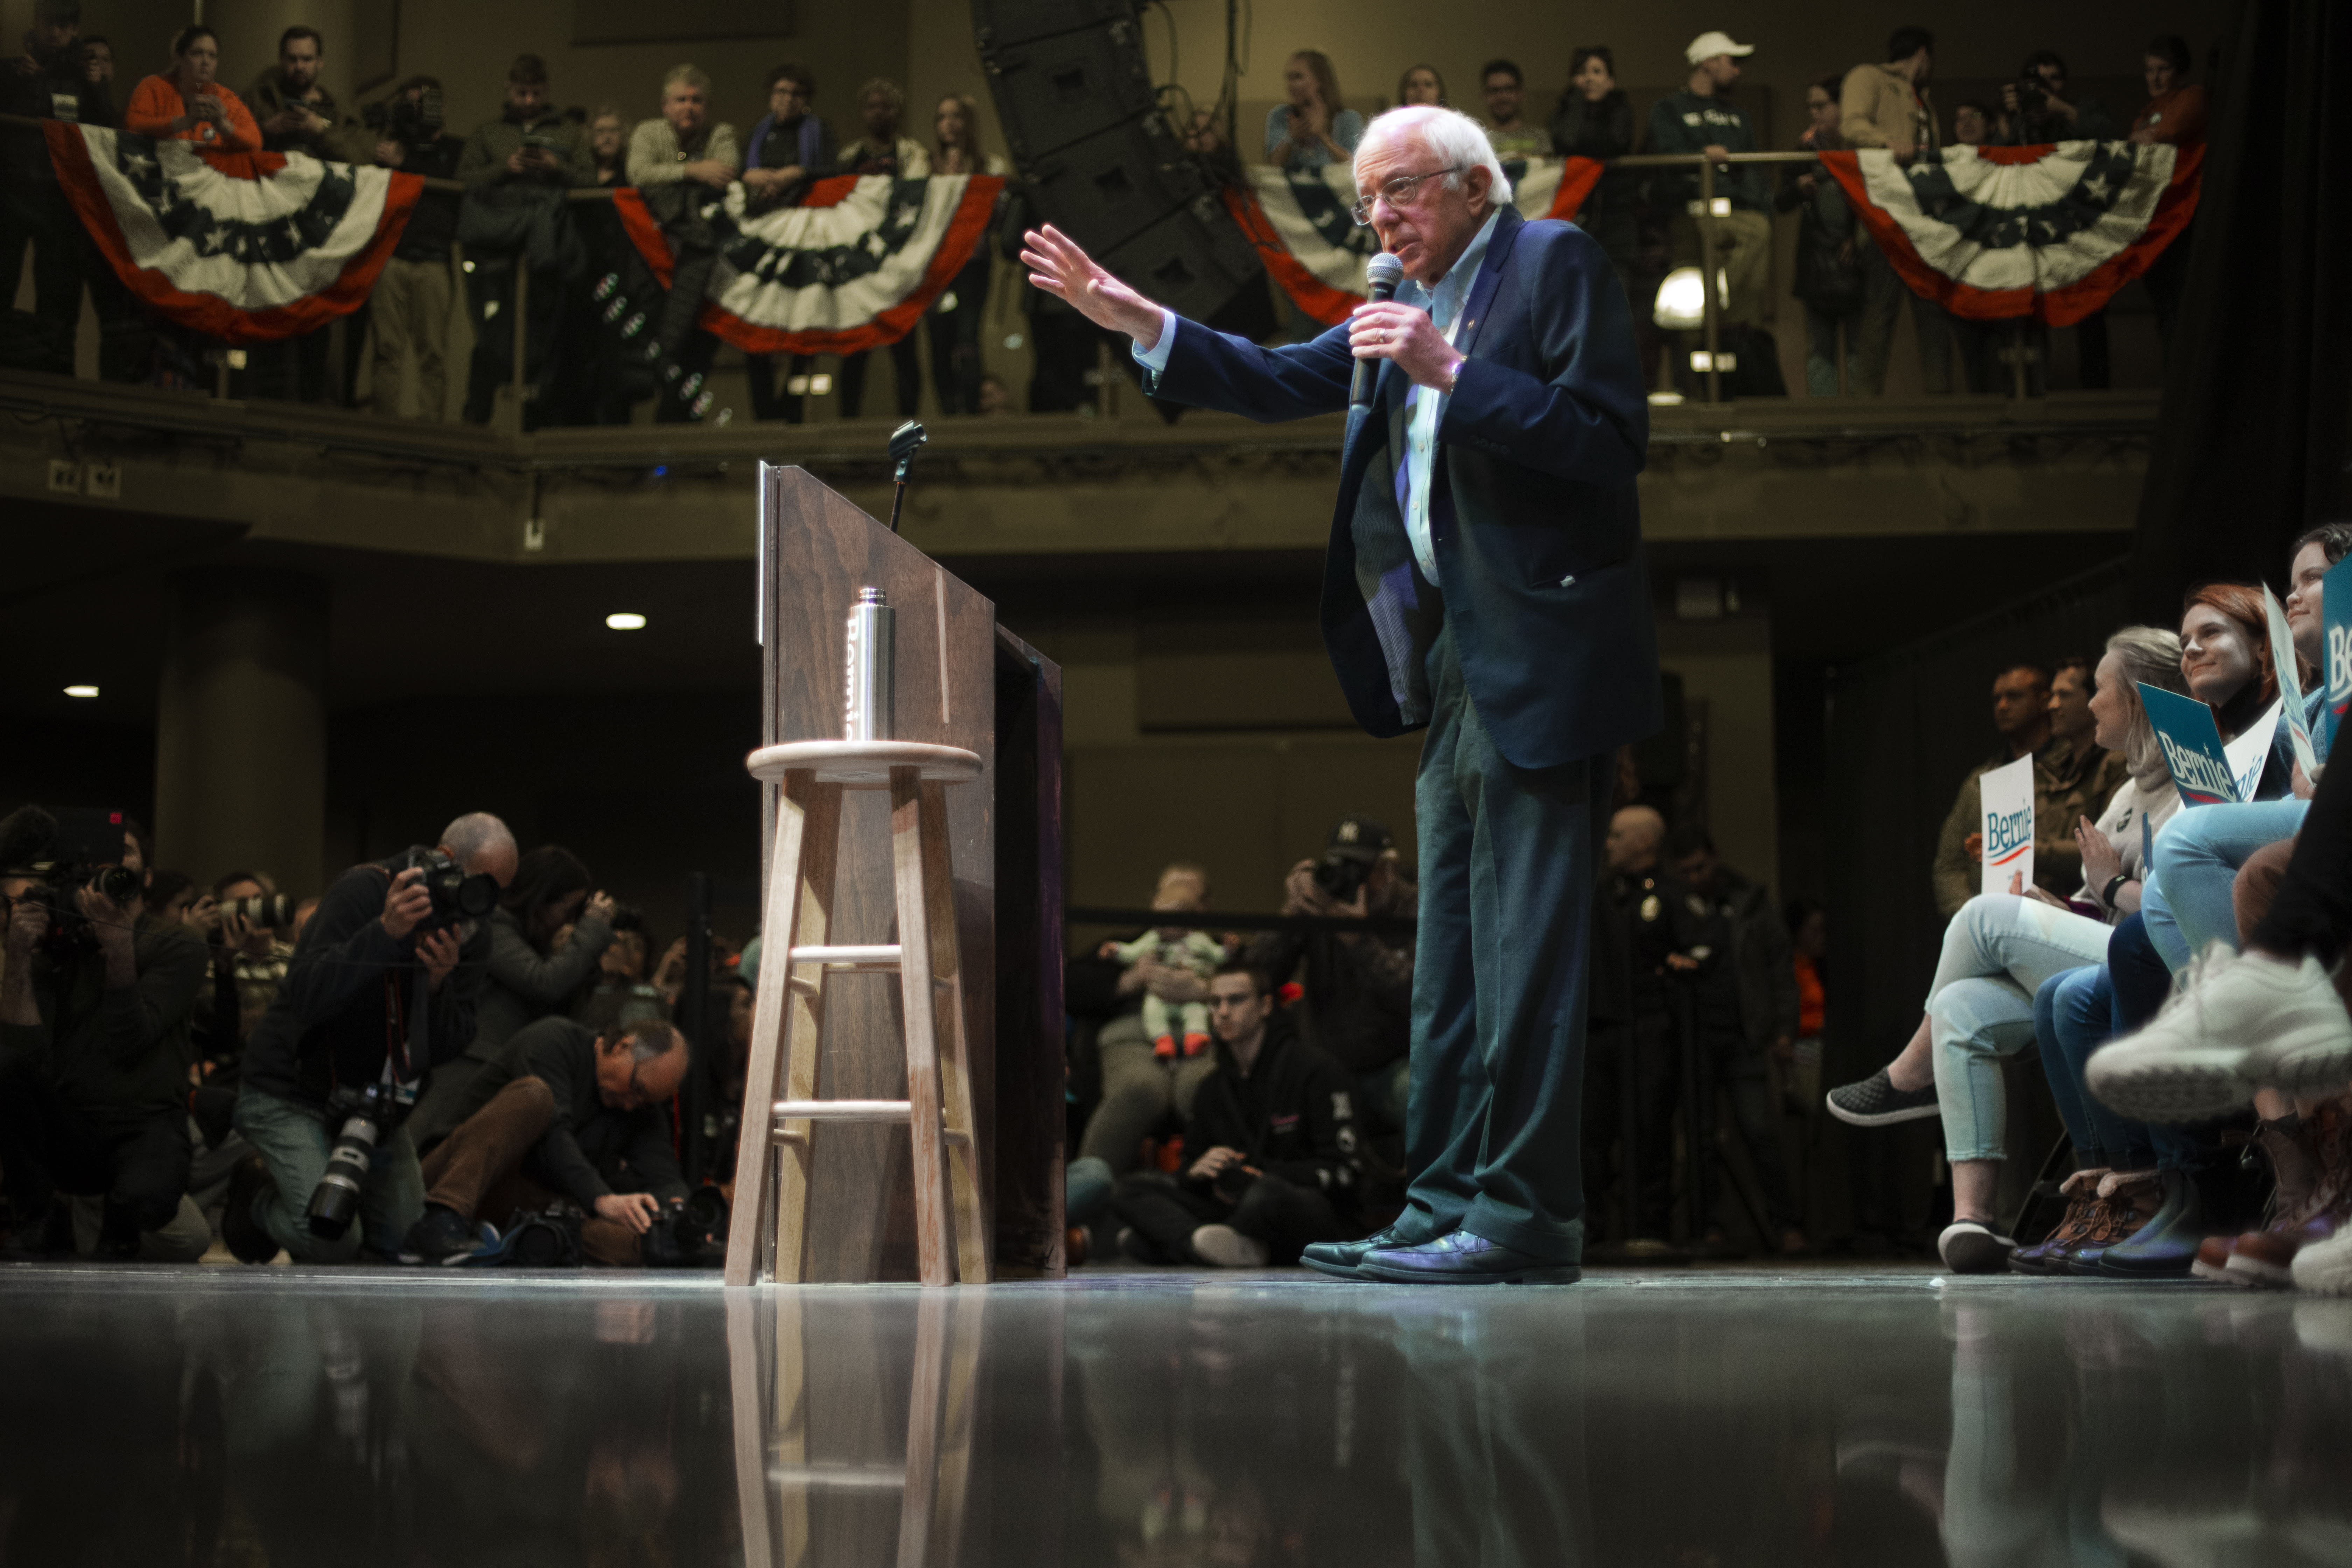 How to watch the Iowa caucuses